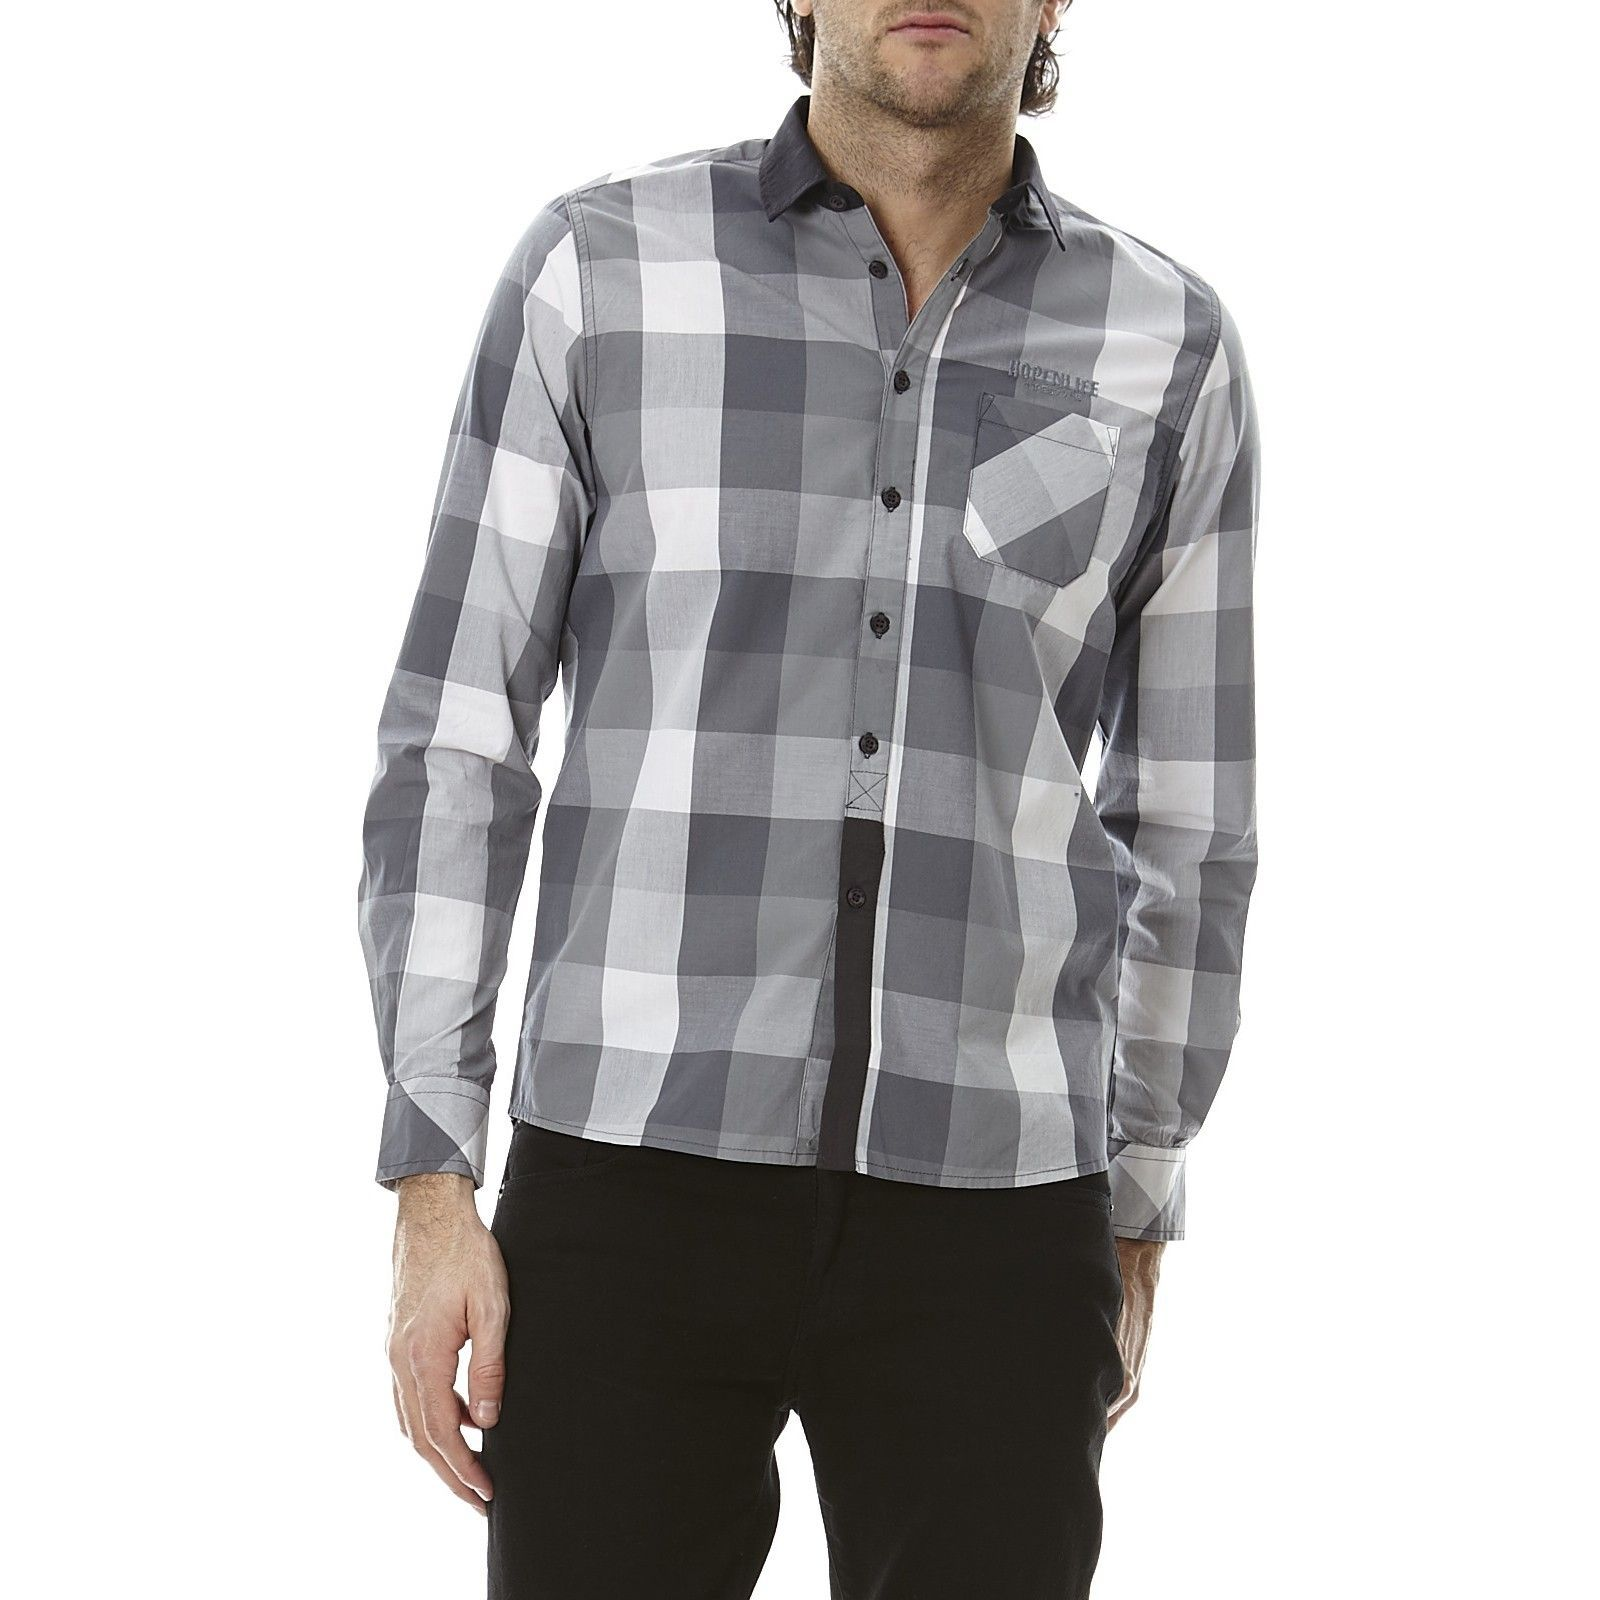 N Longues Gris Hope Life Manches NaitoChemise Homme V PwkZXiuOT